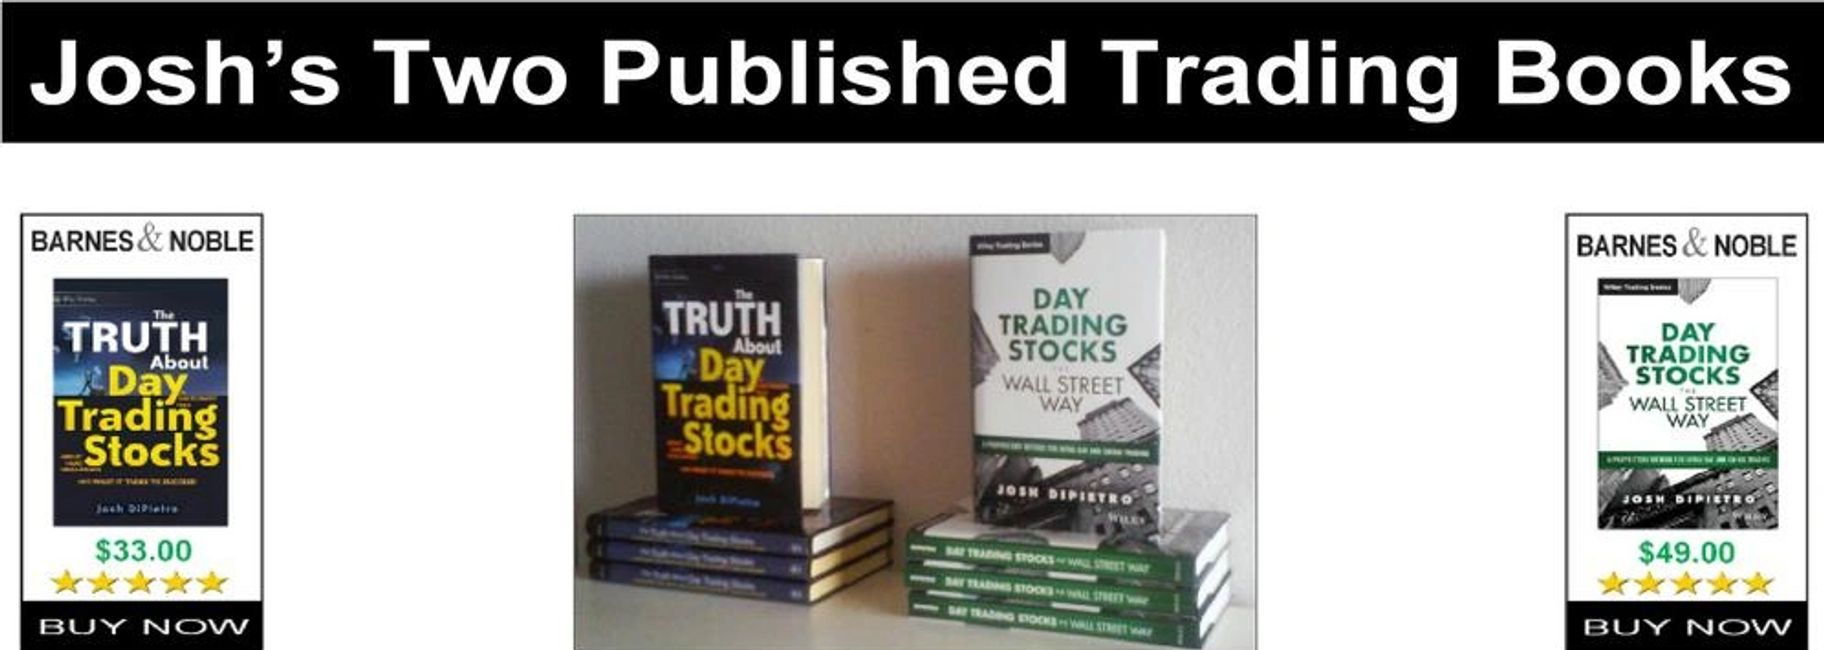 day trader josh, josh dipietro, stock trading books, wiley trading